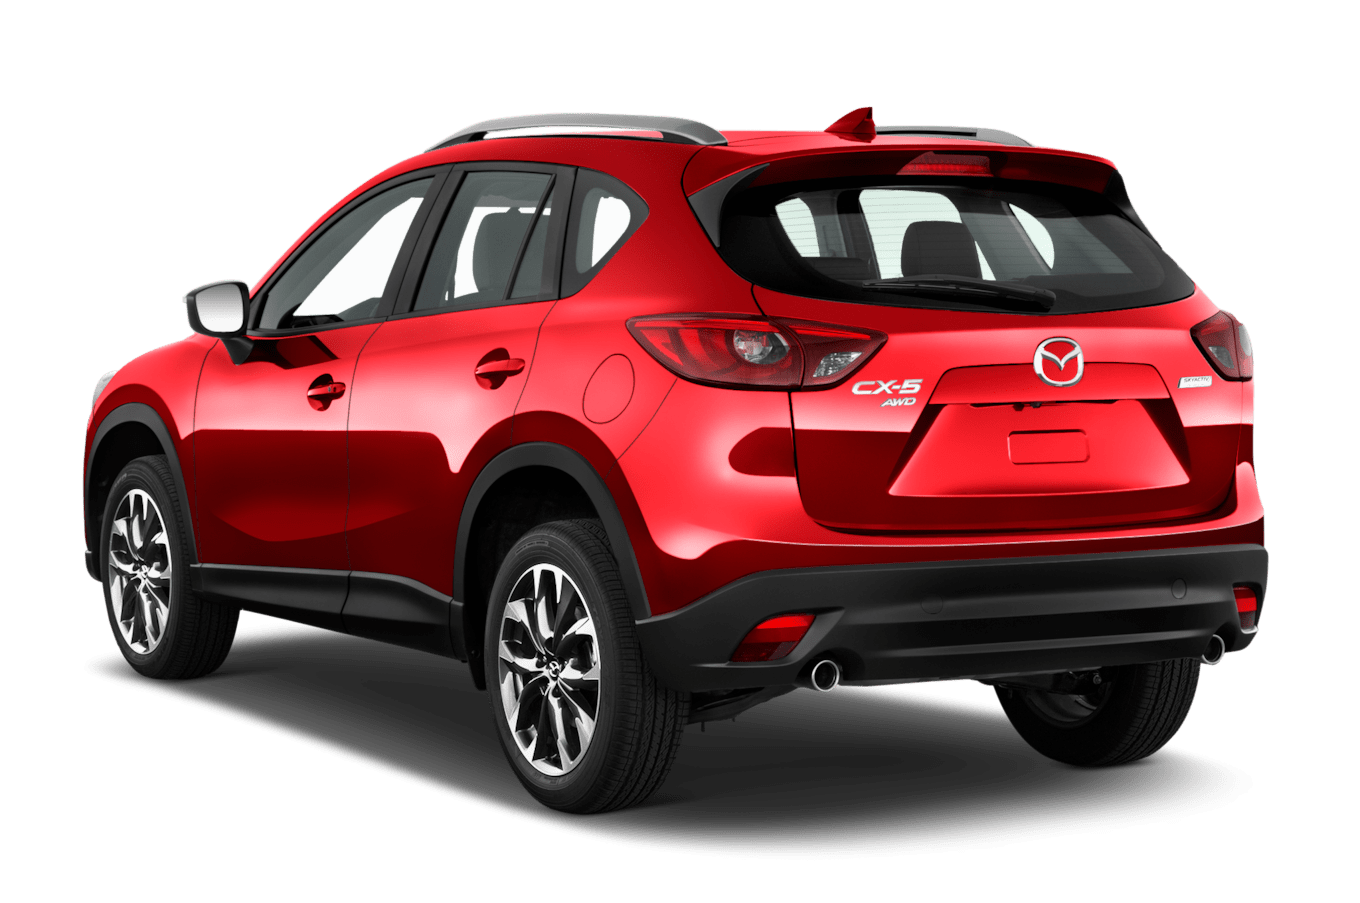 Mazda Cx5 Reviews Research New & Used Models  Motor Trend